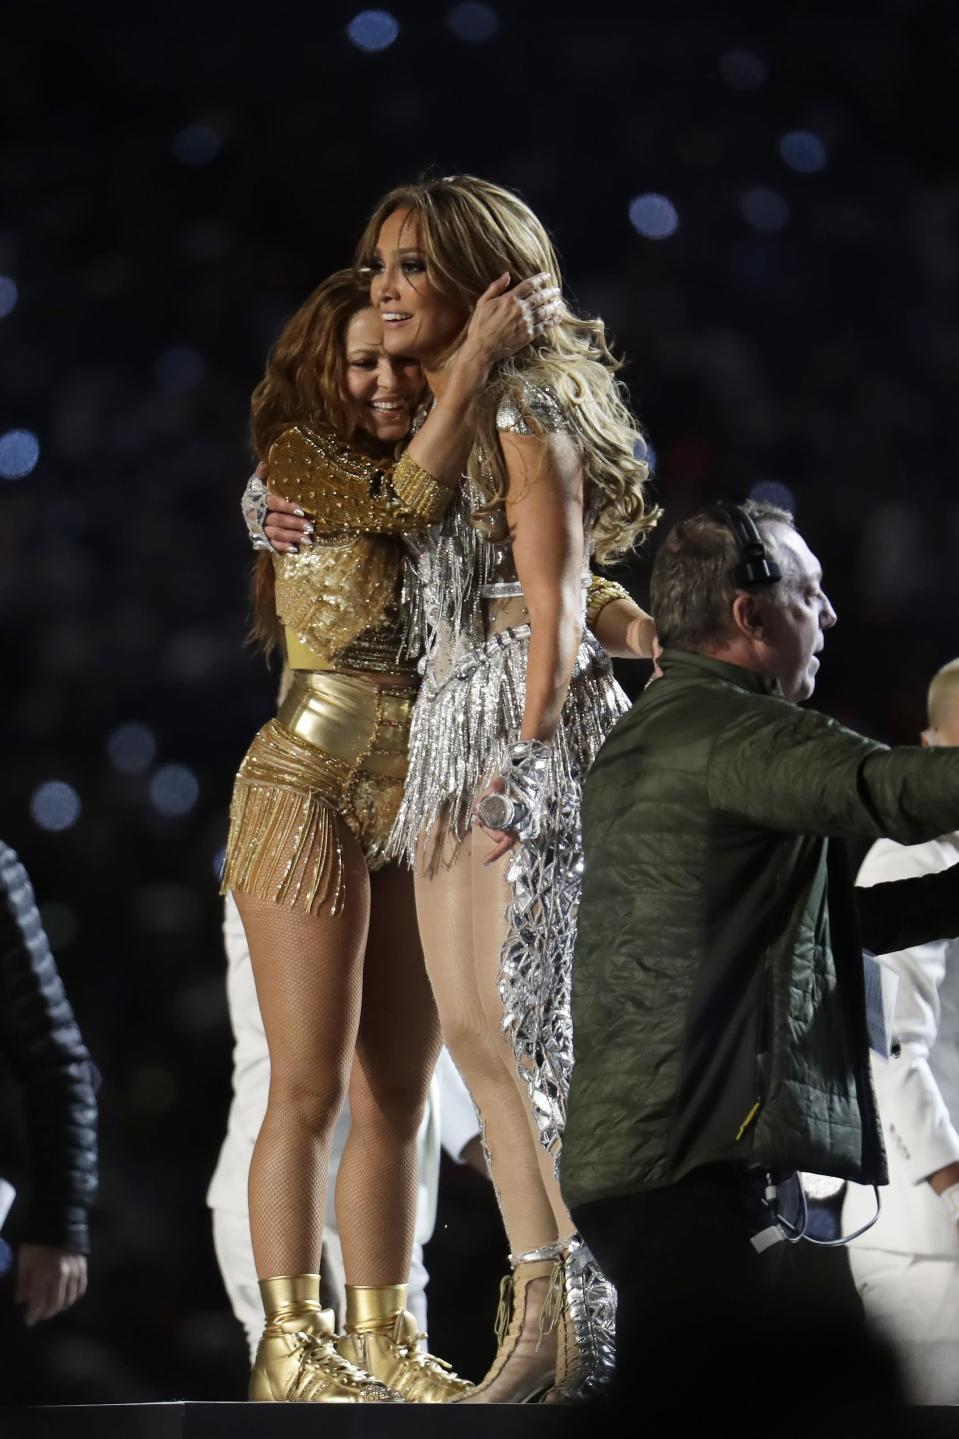 Shakira, left, hugs Jennifer Lopez after performing during halftime of the NFL Super Bowl 54 football game between the Kansas City Chiefs and the San Francisco 49ers Sunday, Feb. 2, 2020, in Miami Gardens, Fla. (AP Photo/Lynne Sladky)